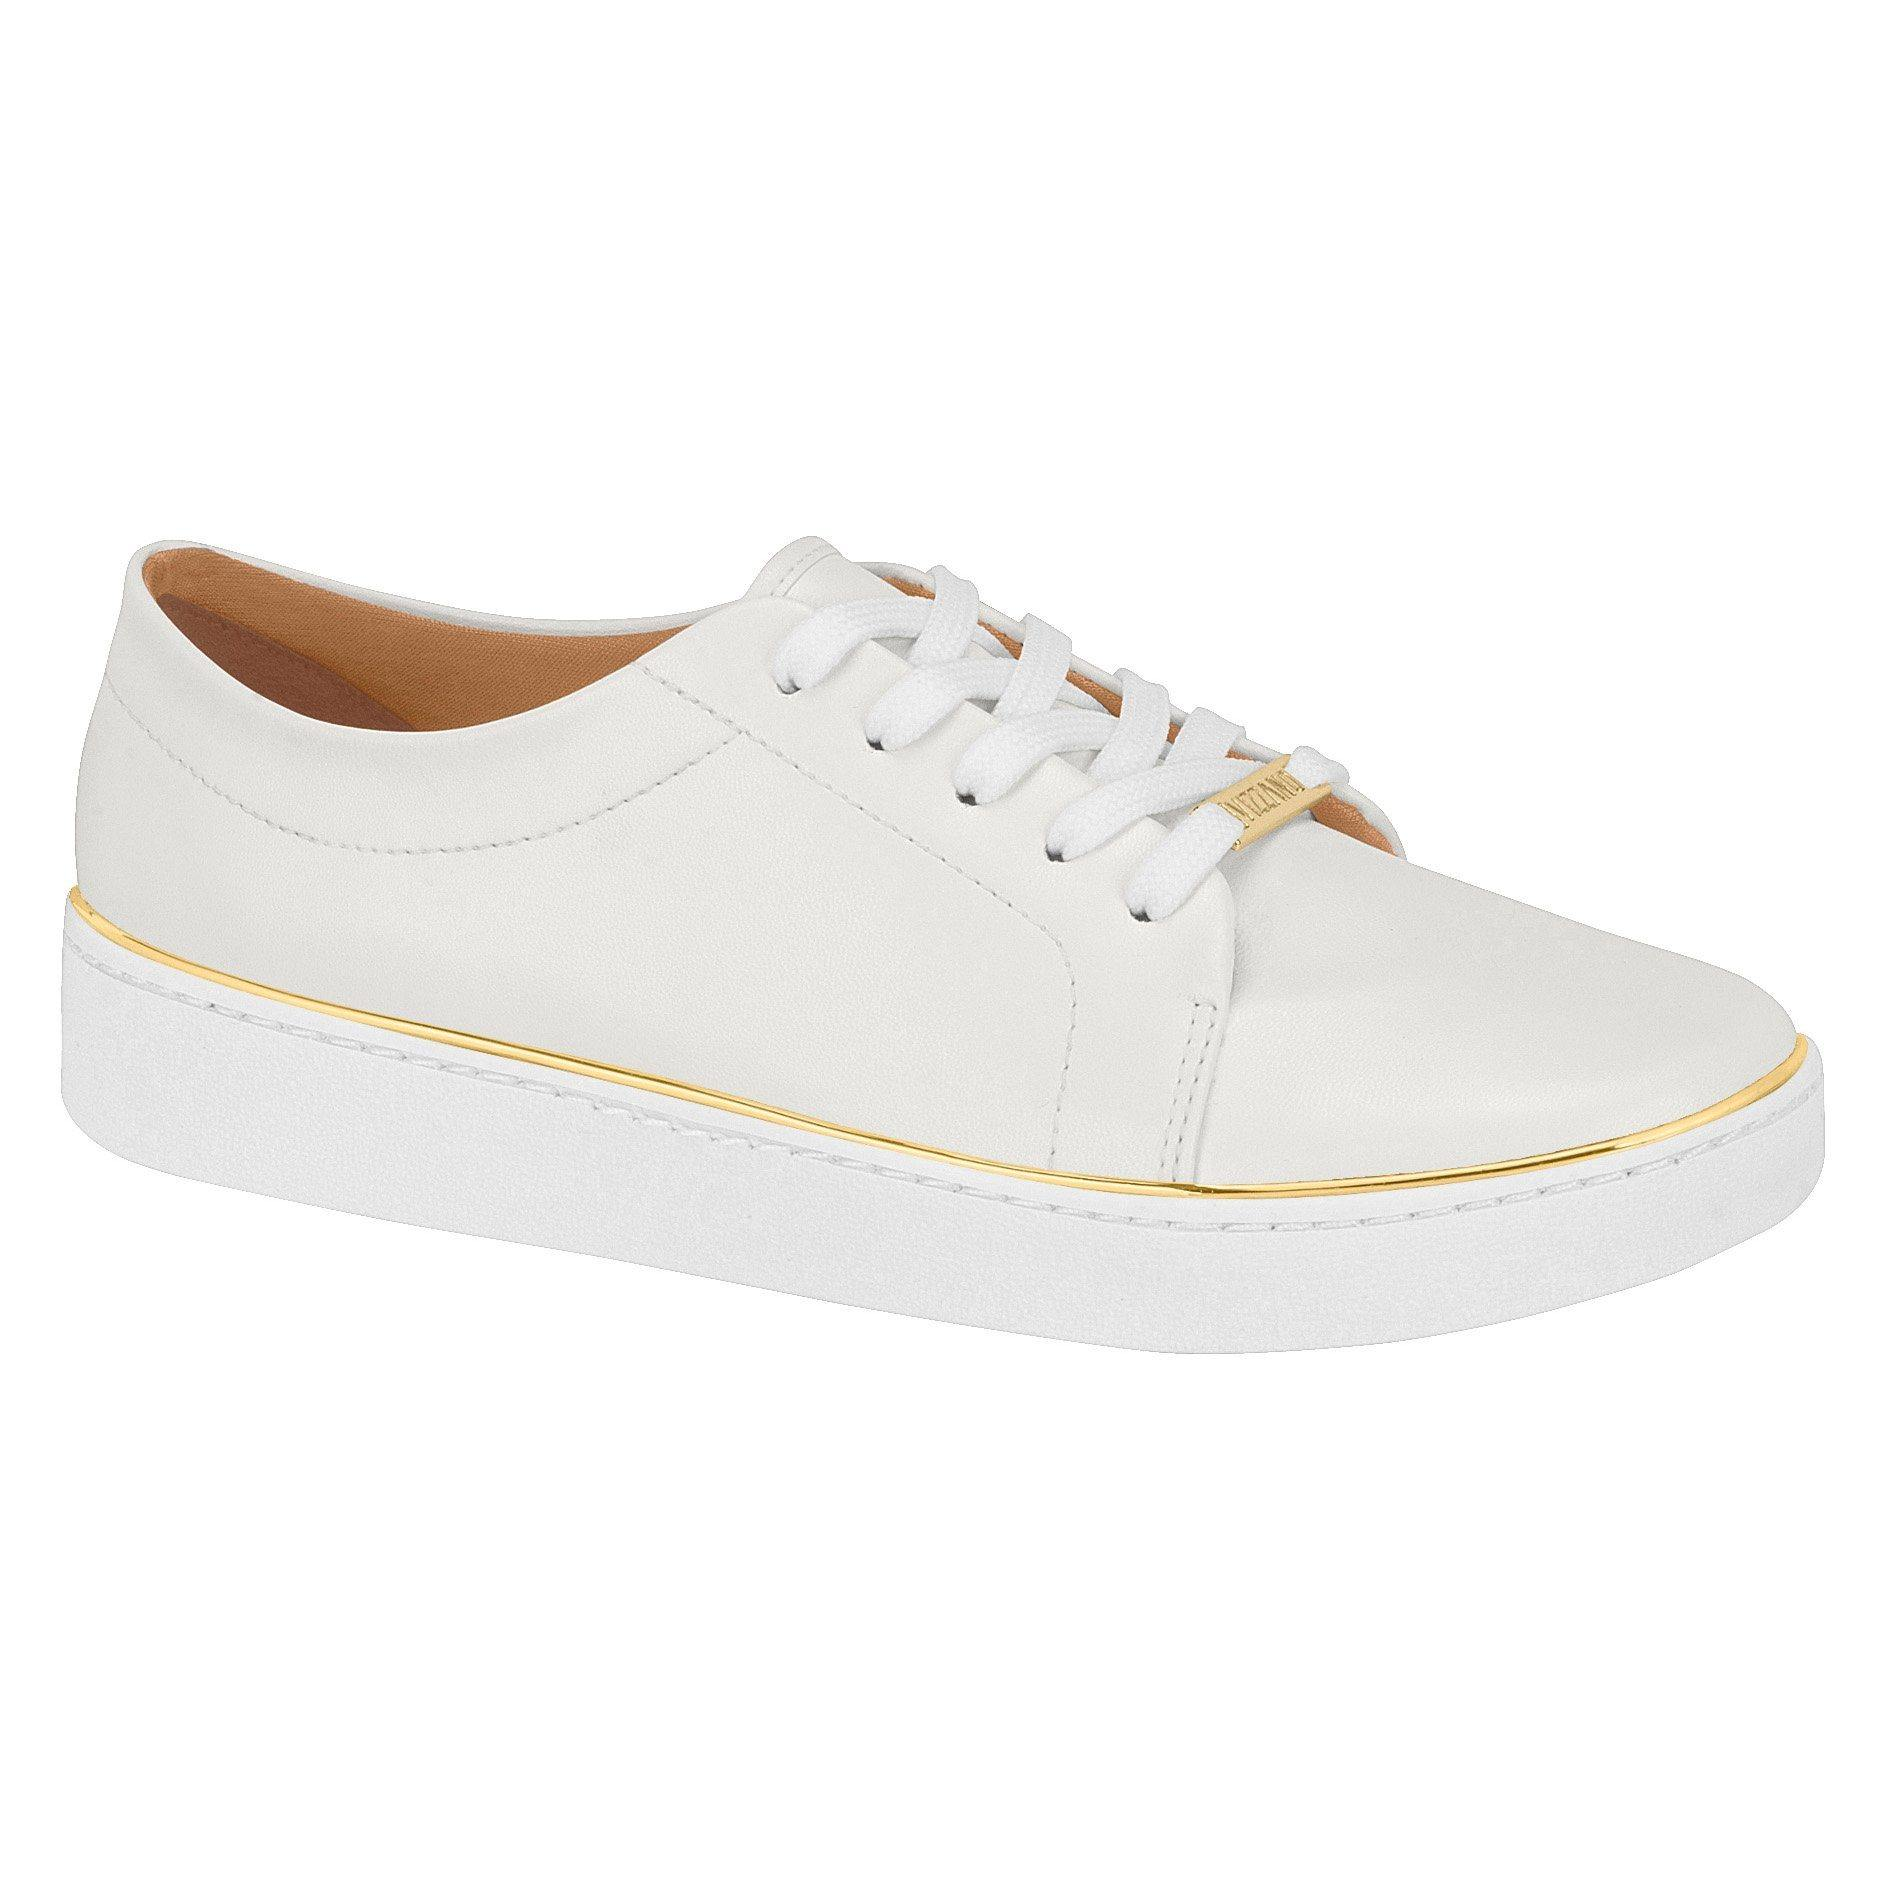 Vizzano 1214-105 White Sneaker with Gold Rim